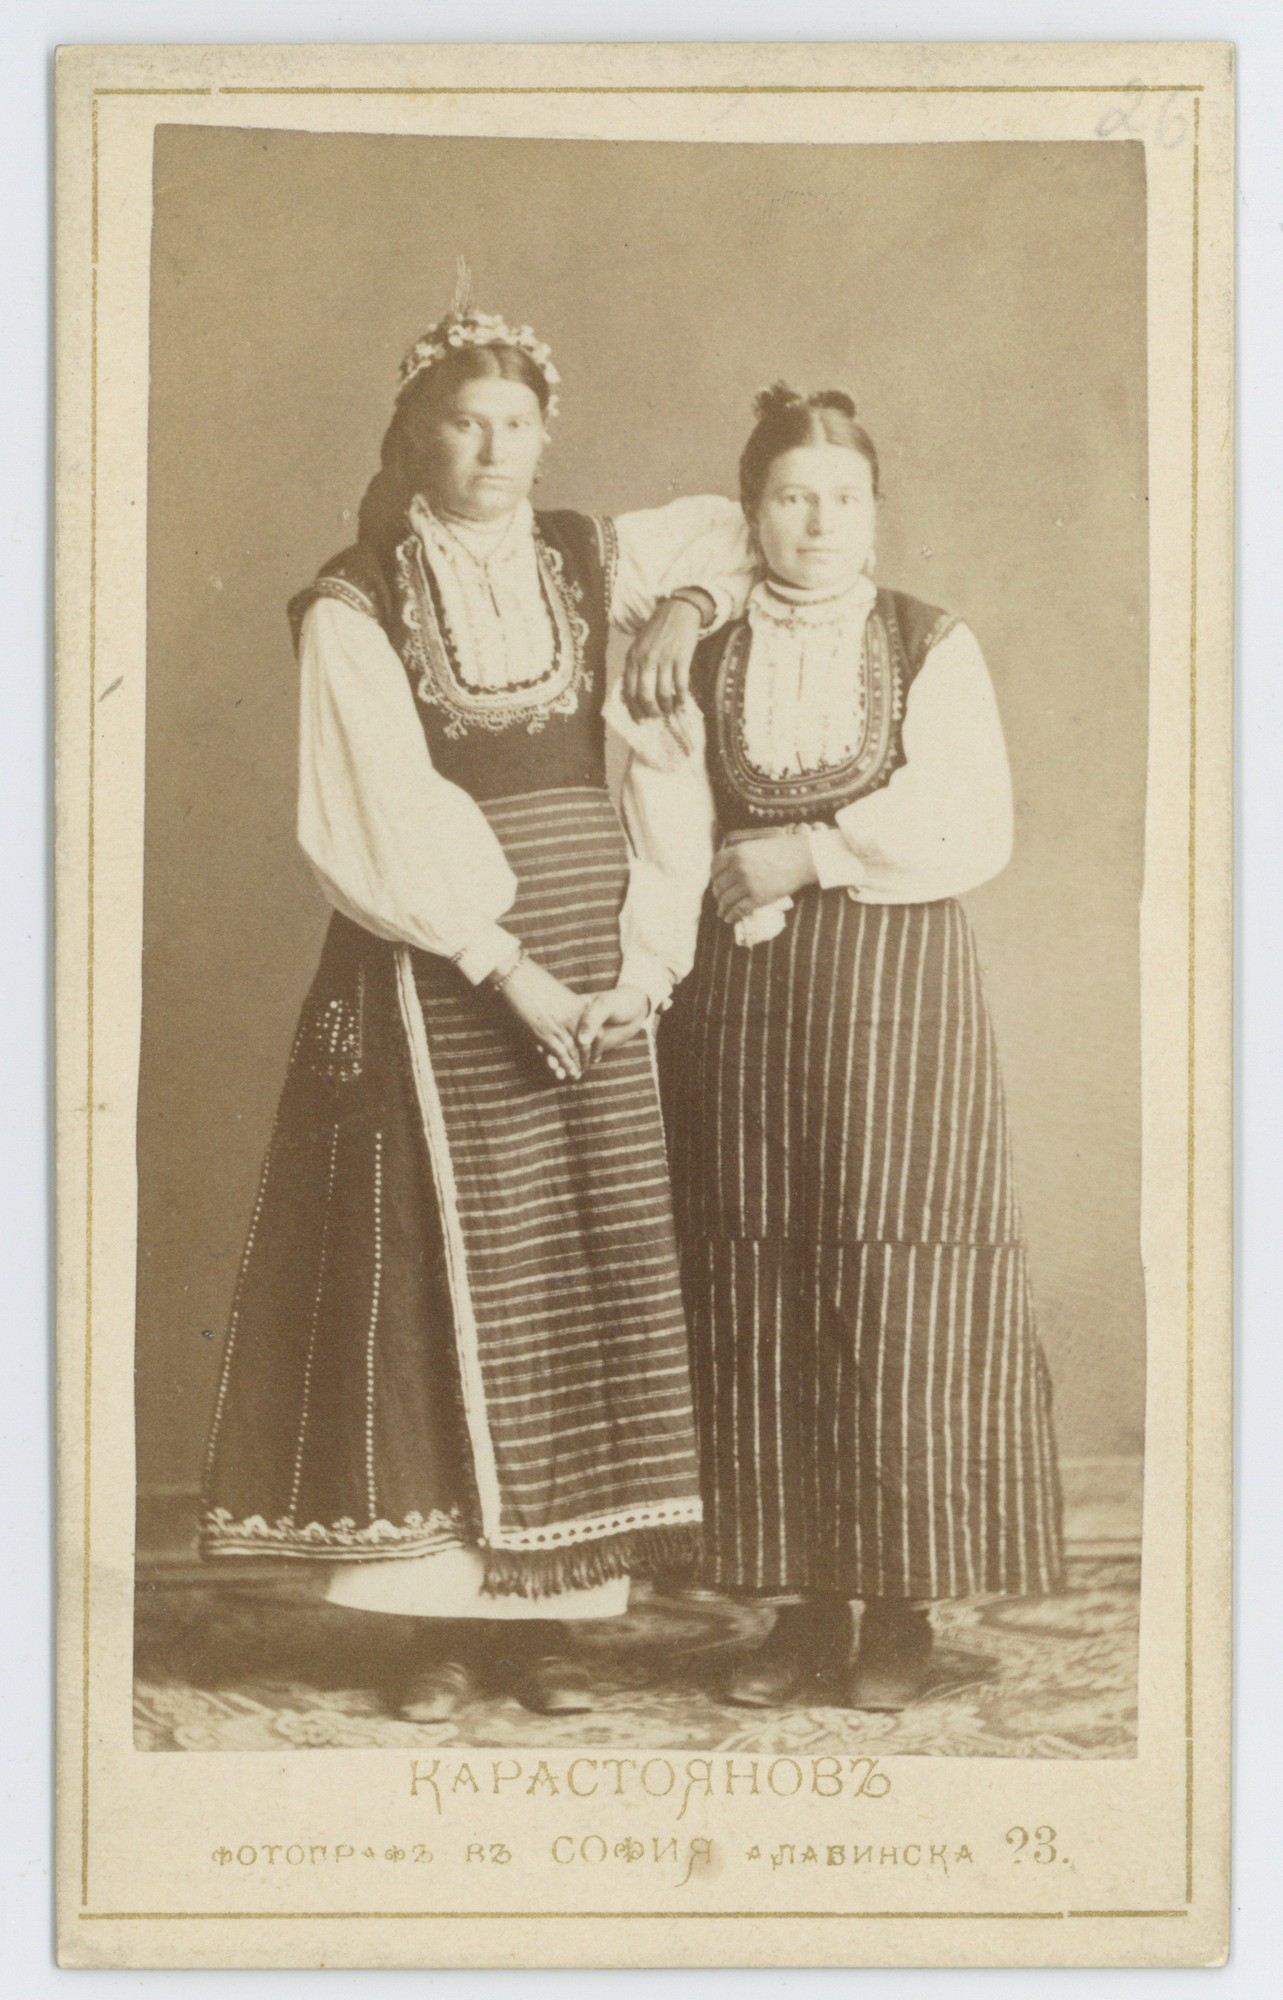 Studio portrait of two women in folk attire, © Scientific Archive of the Bulgarian Academy of Sciences